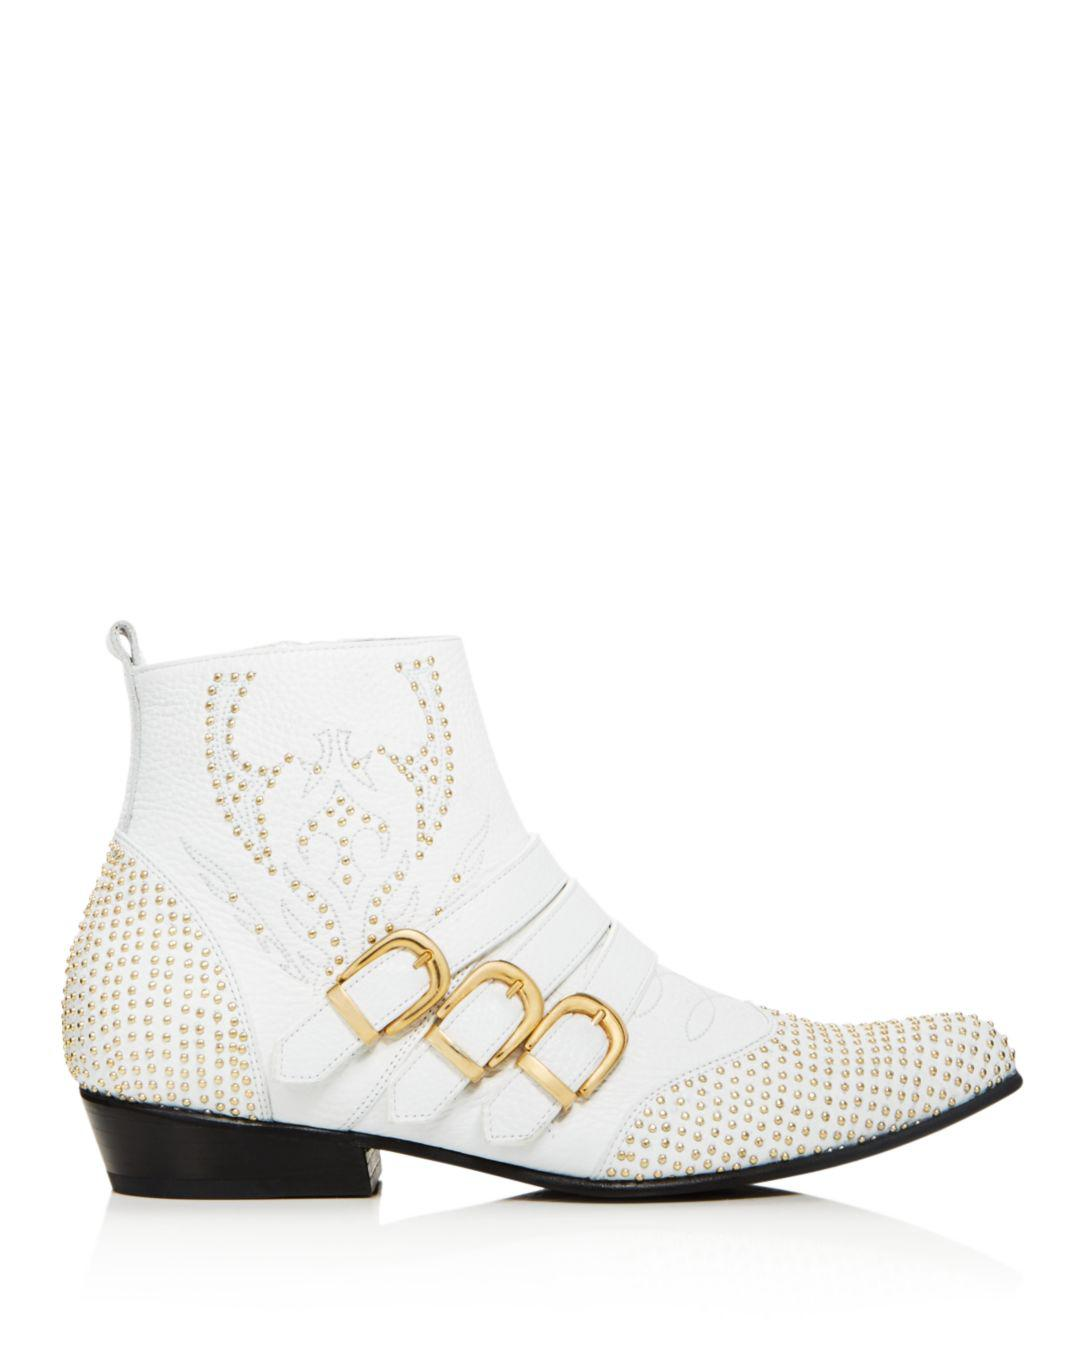 319e8f5c233f3 Lyst - Anine Bing Penny Boots in White - Save 50%